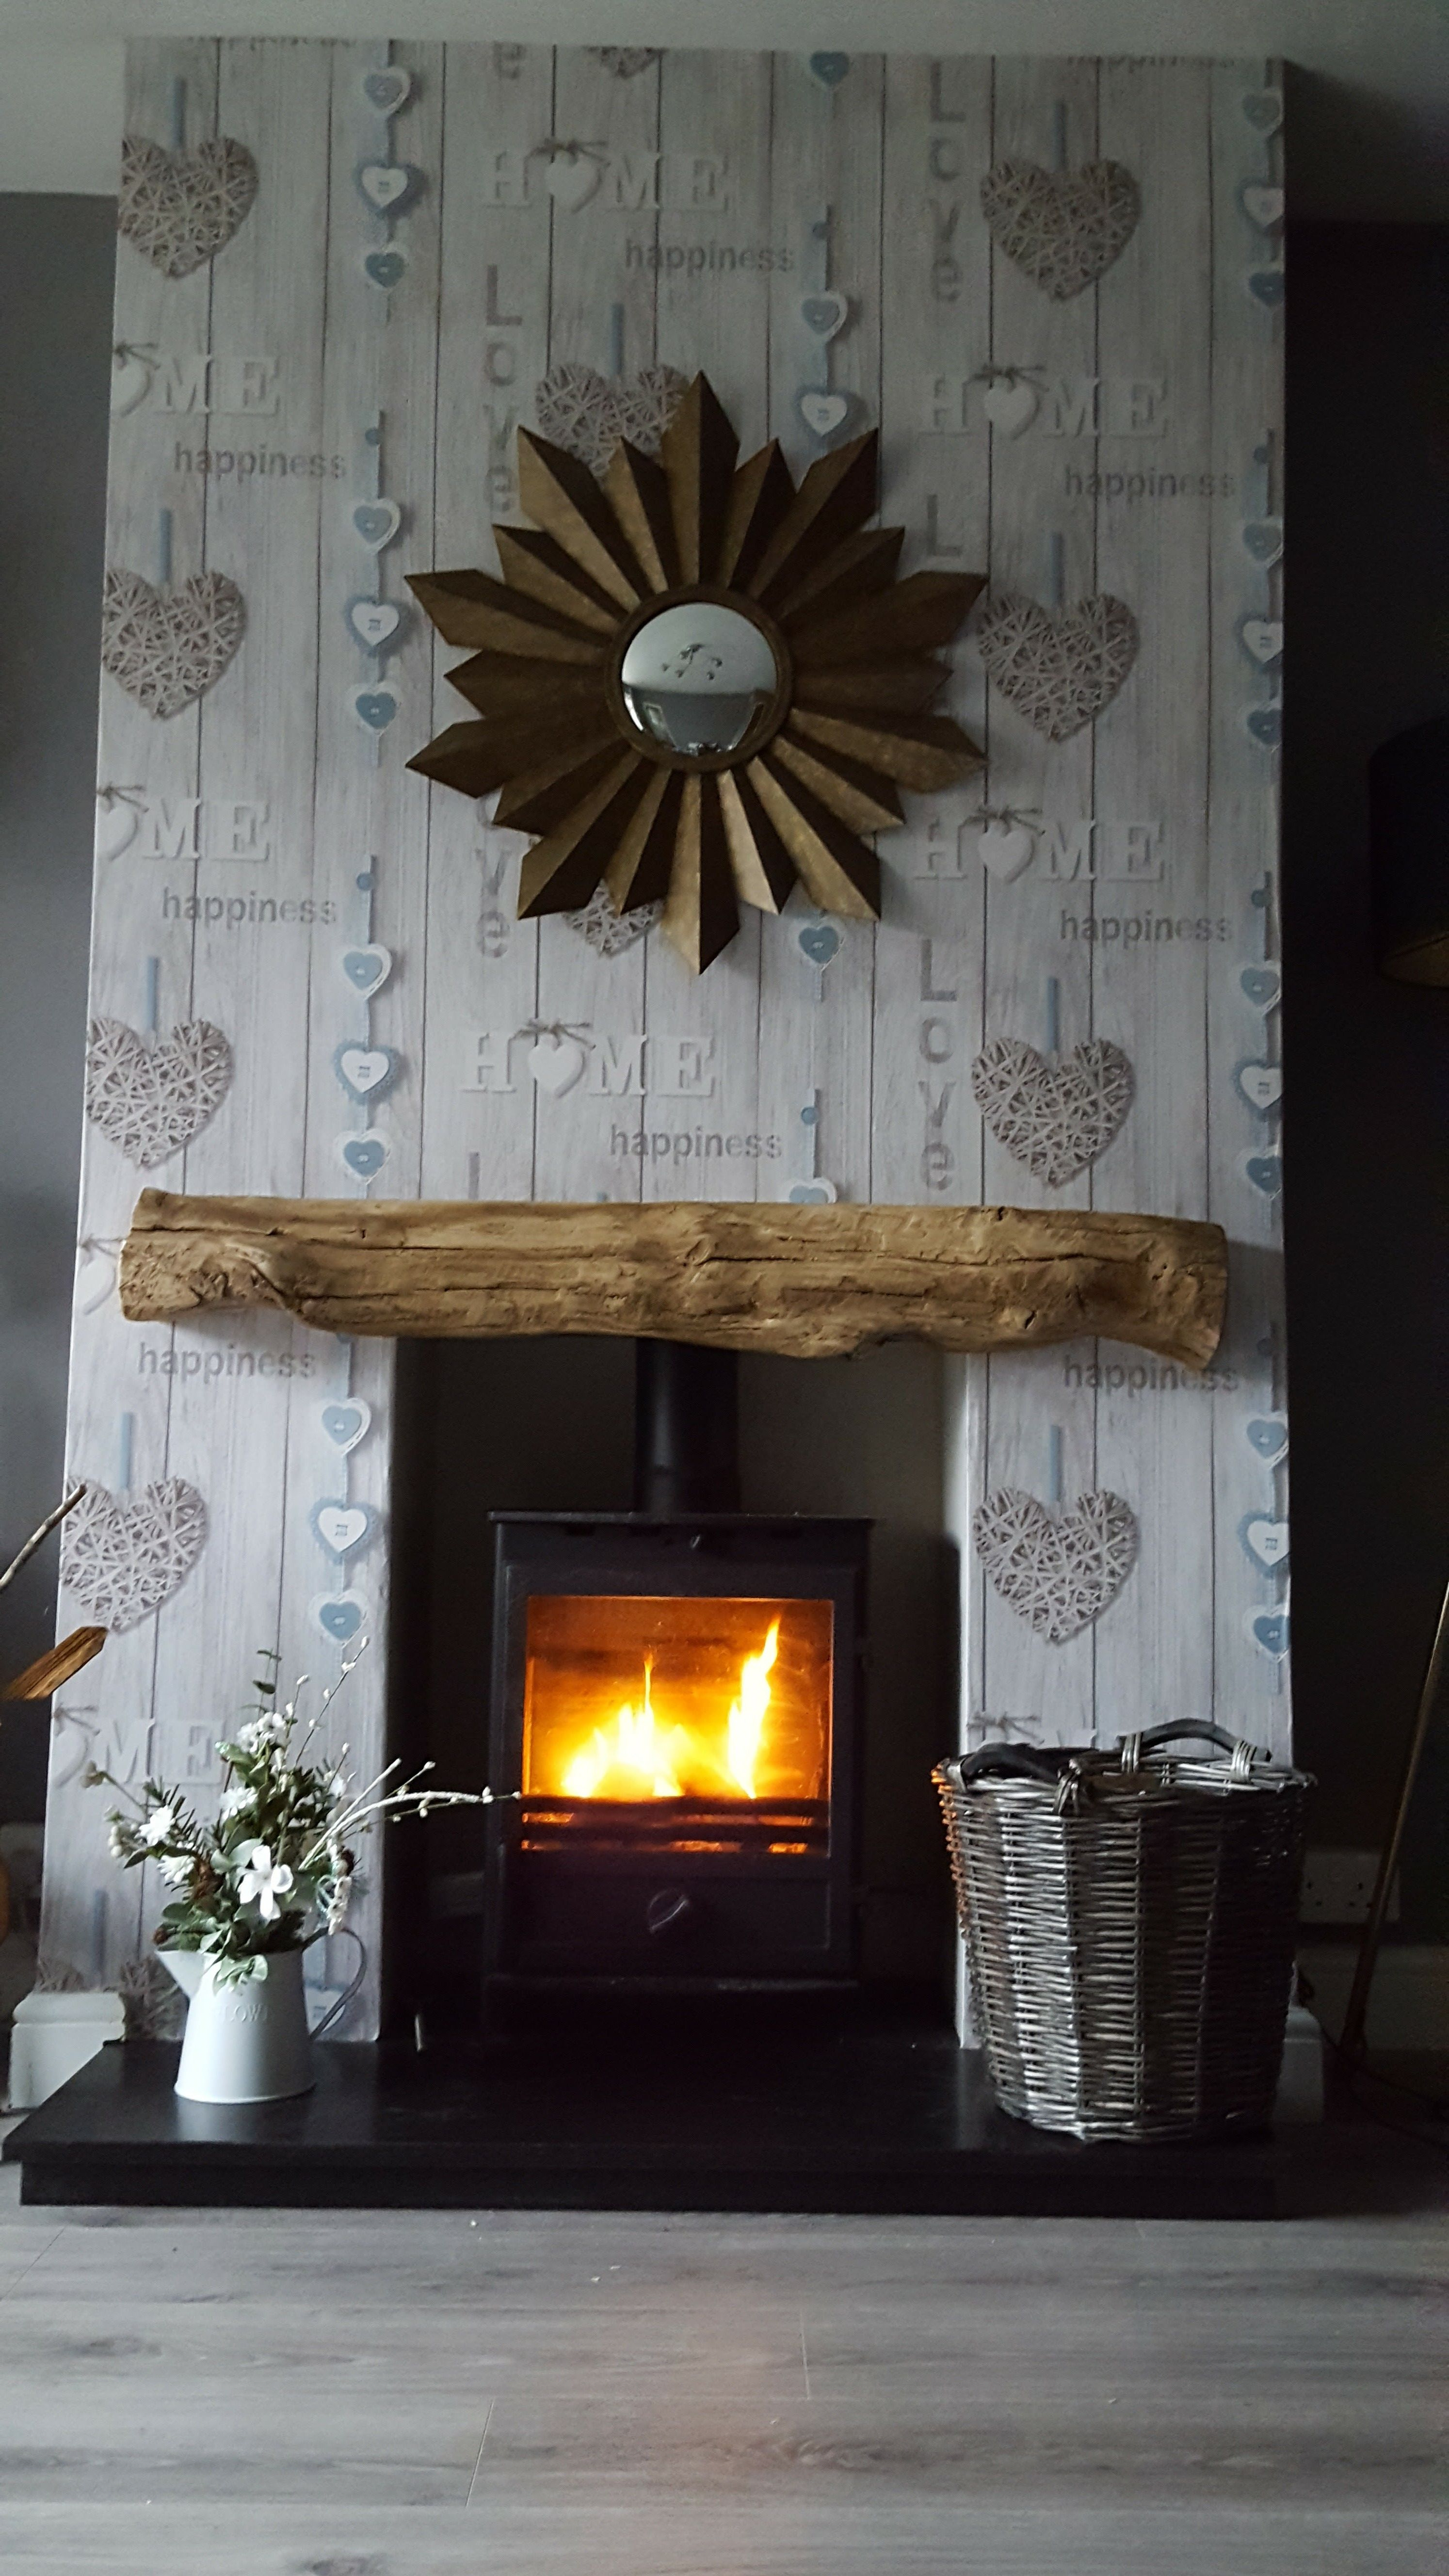 Installed this lovely wood burner and wallpapered chimney breast. | wallpapered fireplace with a ...